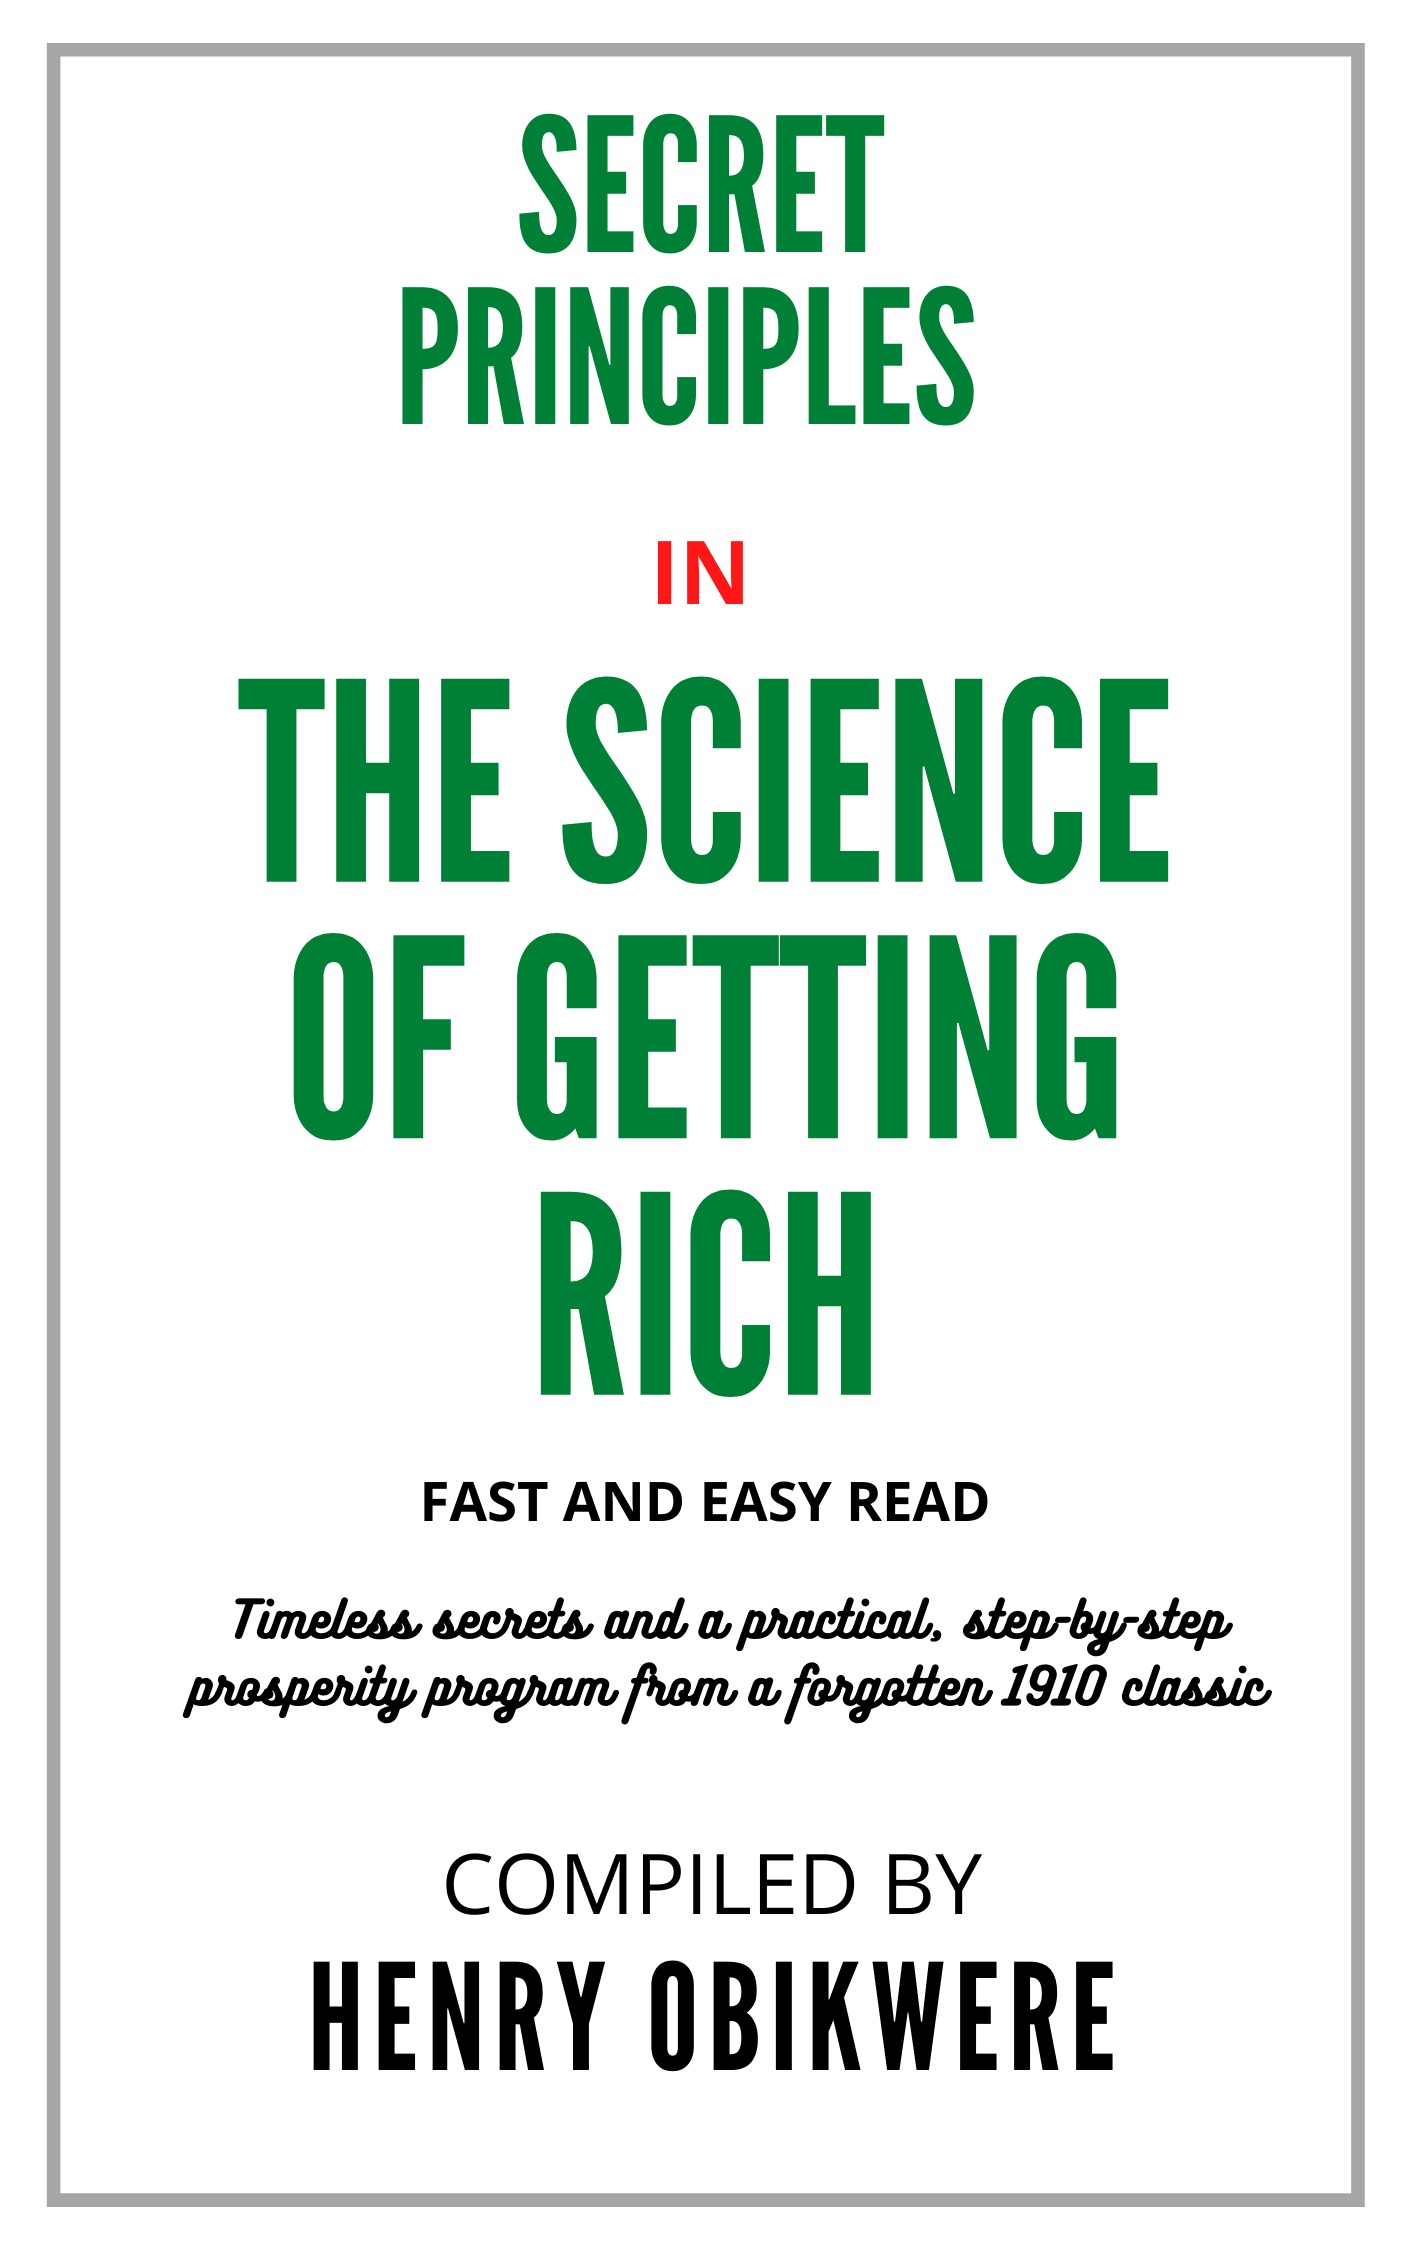 SECRET PRINCIPLES IN THE SCIENCE OF GETTING RICH